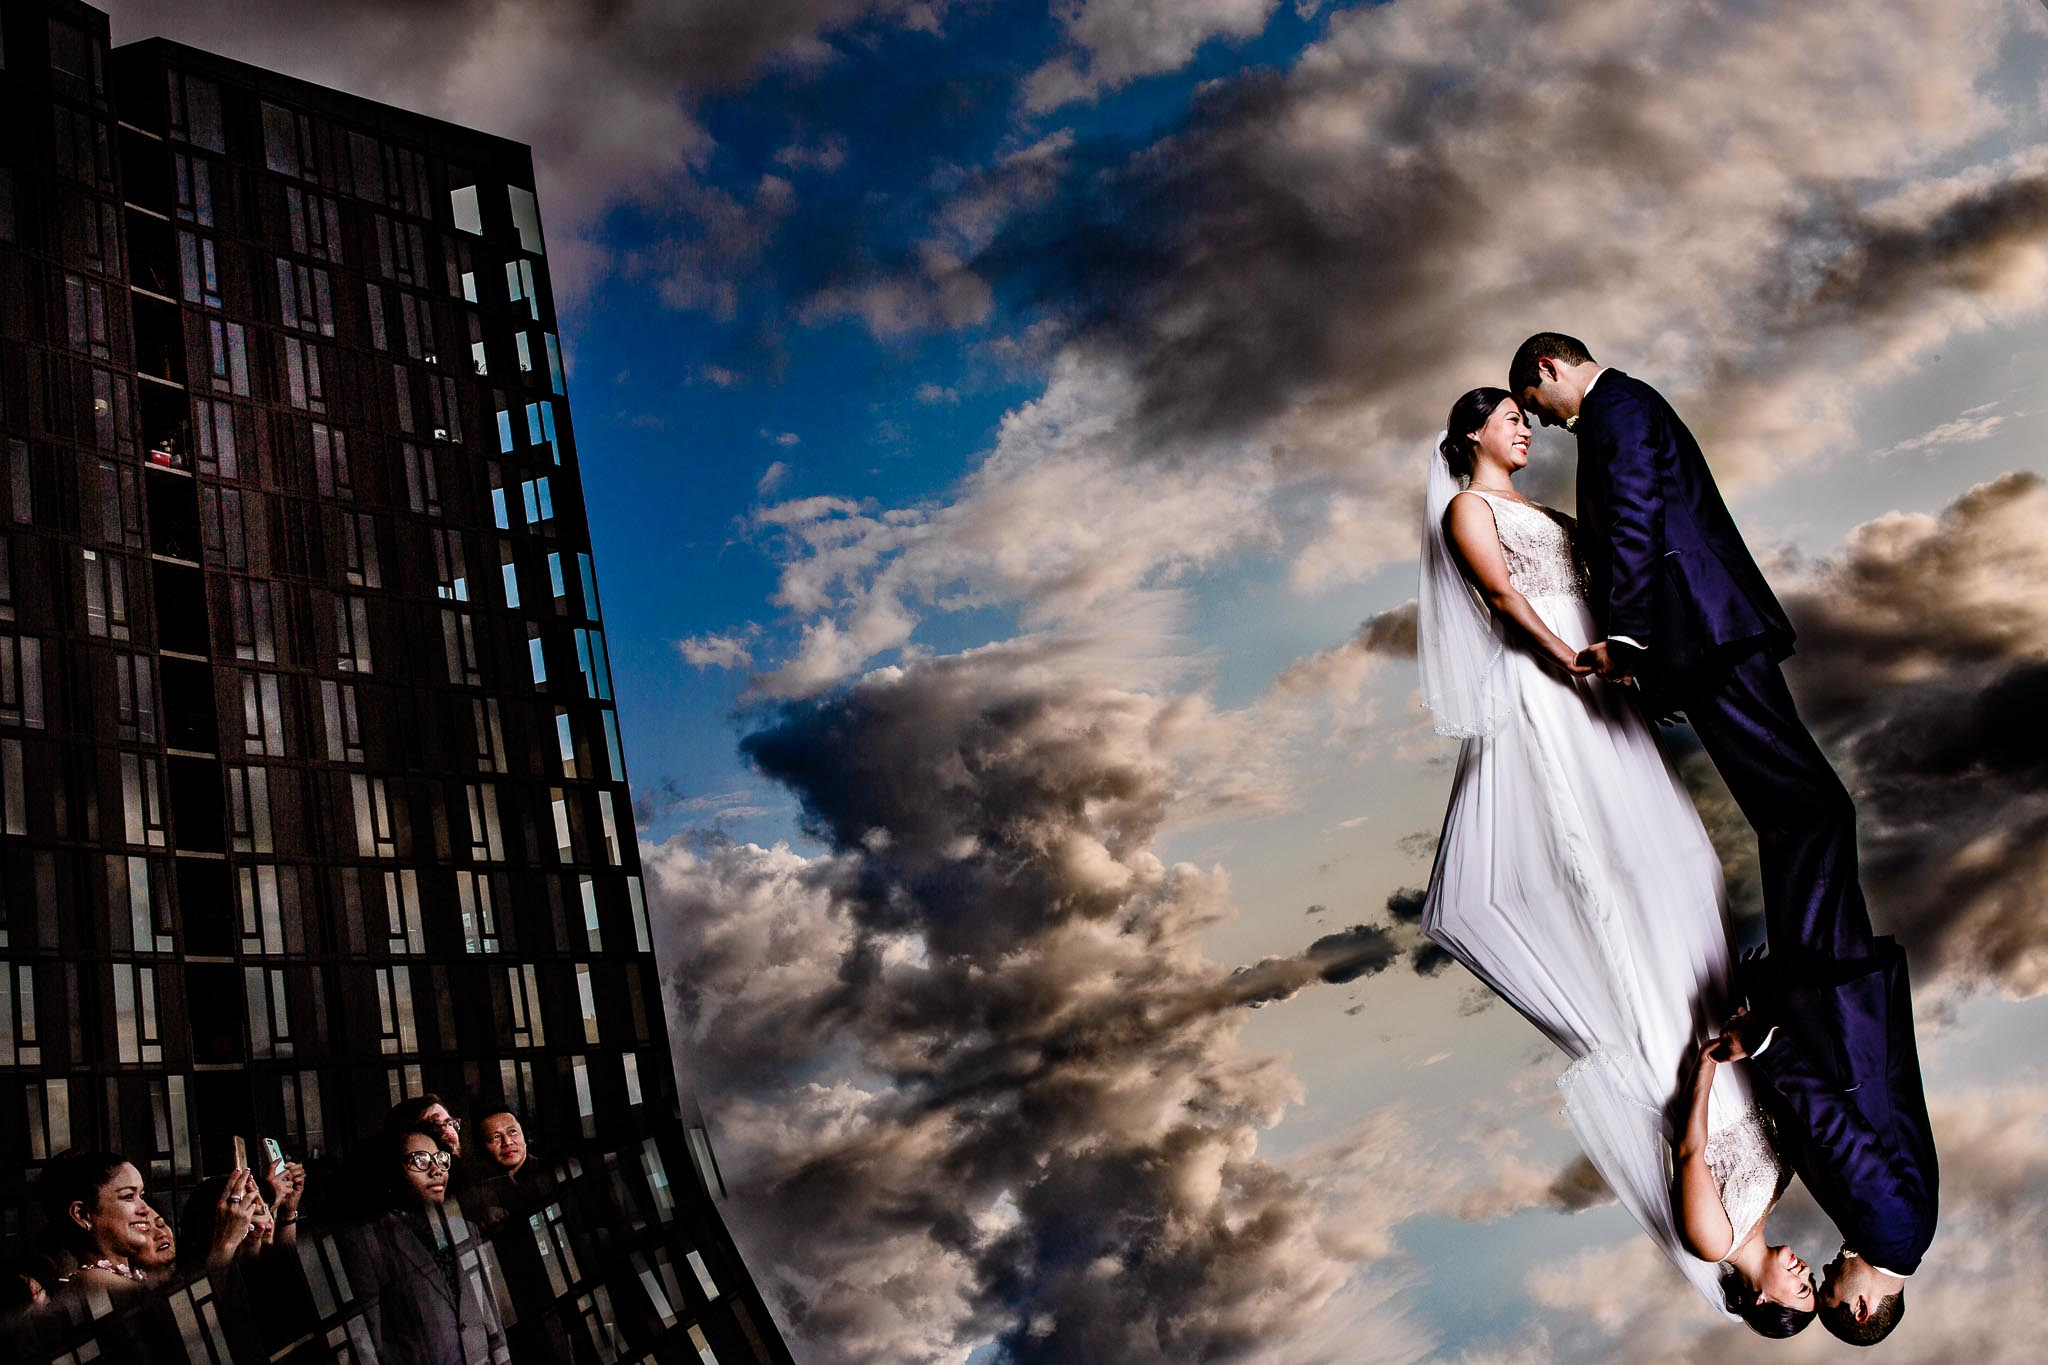 Bride and Groom reflecting in clouds at sunset over reflective building at Exchange Ballroom in Portland